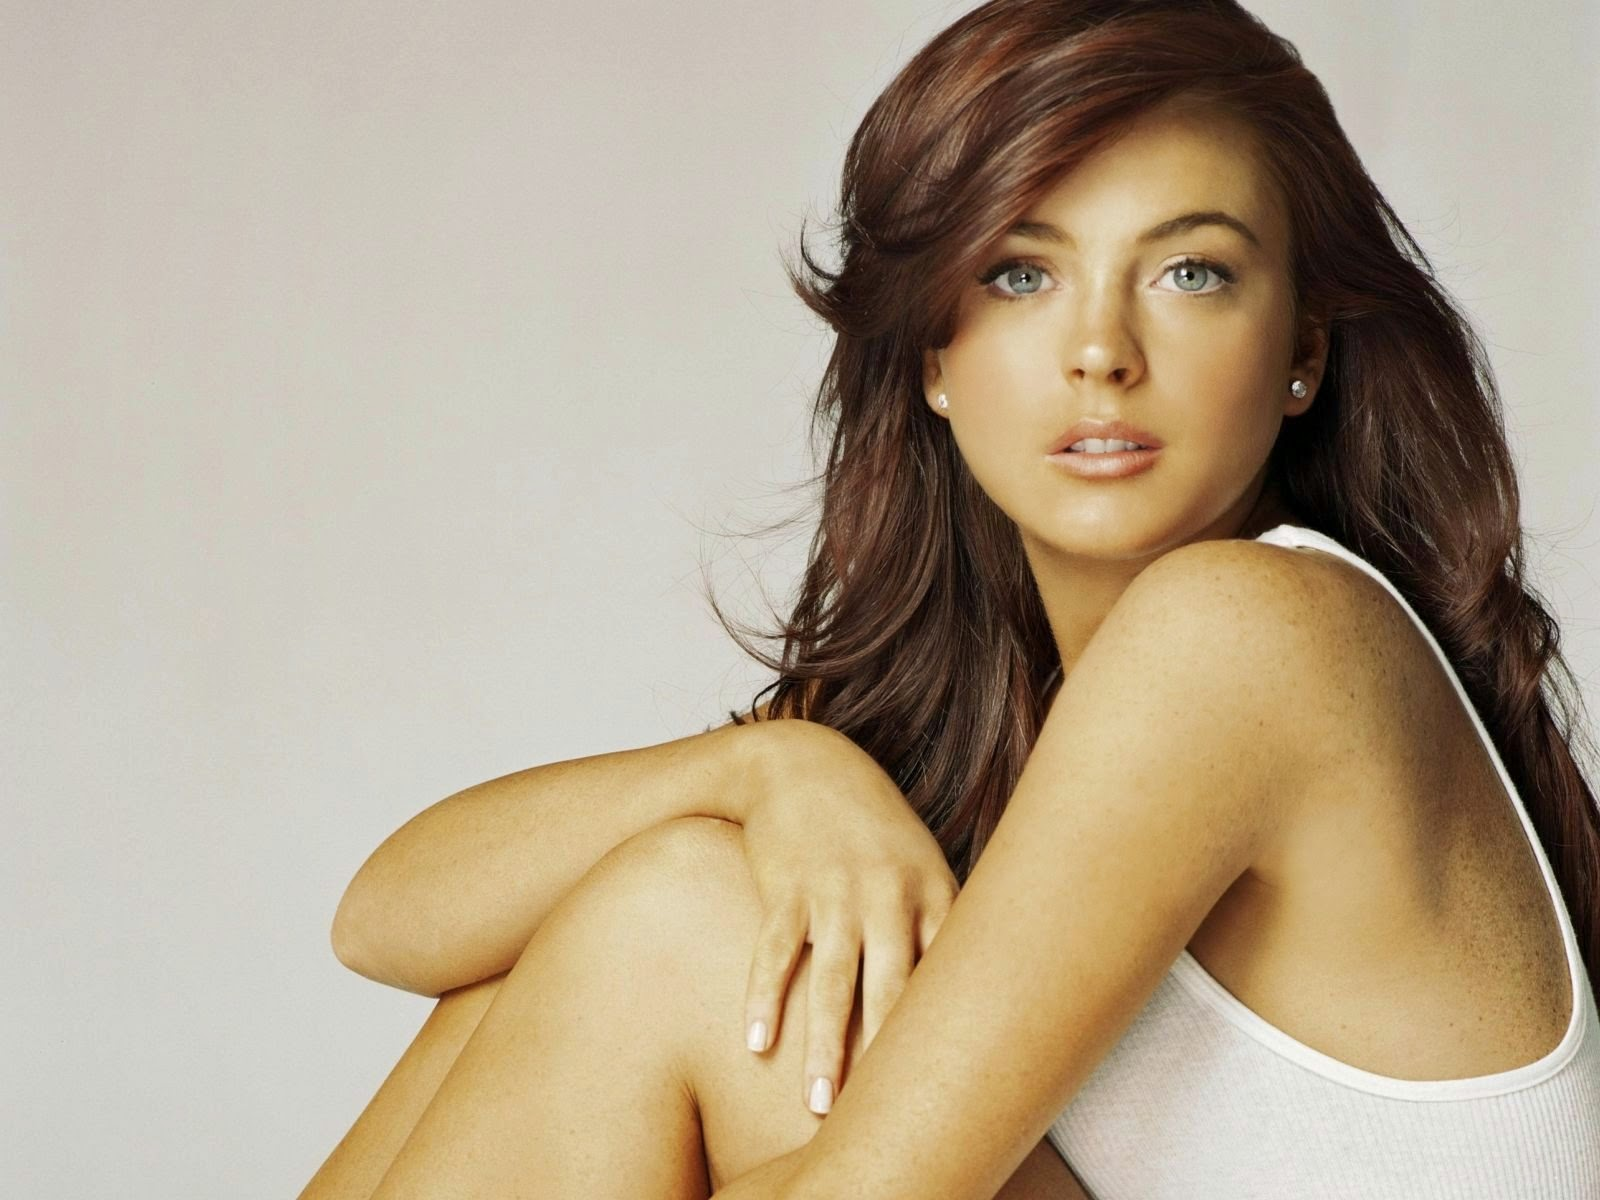 Remarkable, very lindsay lohan sex wallpaper